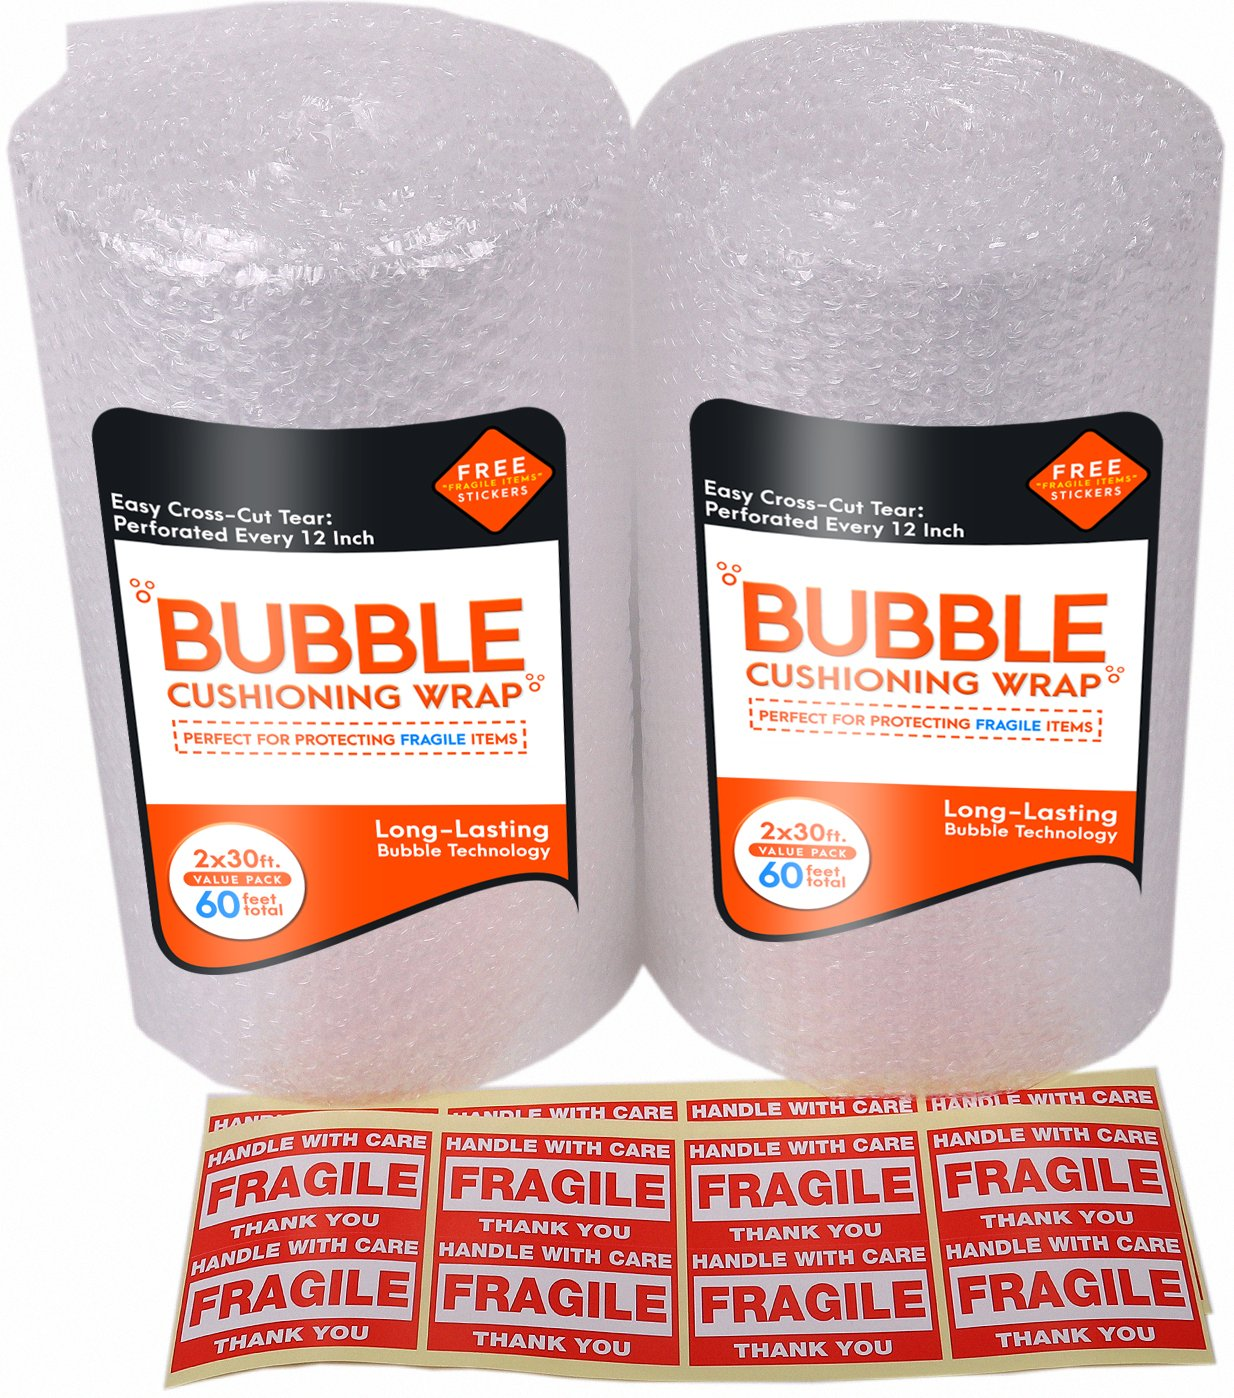 2-Pack Bubble Cushioning Wrap Rolls for Heavy-Duty Packing (3/16'', 12'' x 60 ft Total), Easy-to-Tear 12'' Sheets, Plus Free 16 'Fragile, Handle with Car